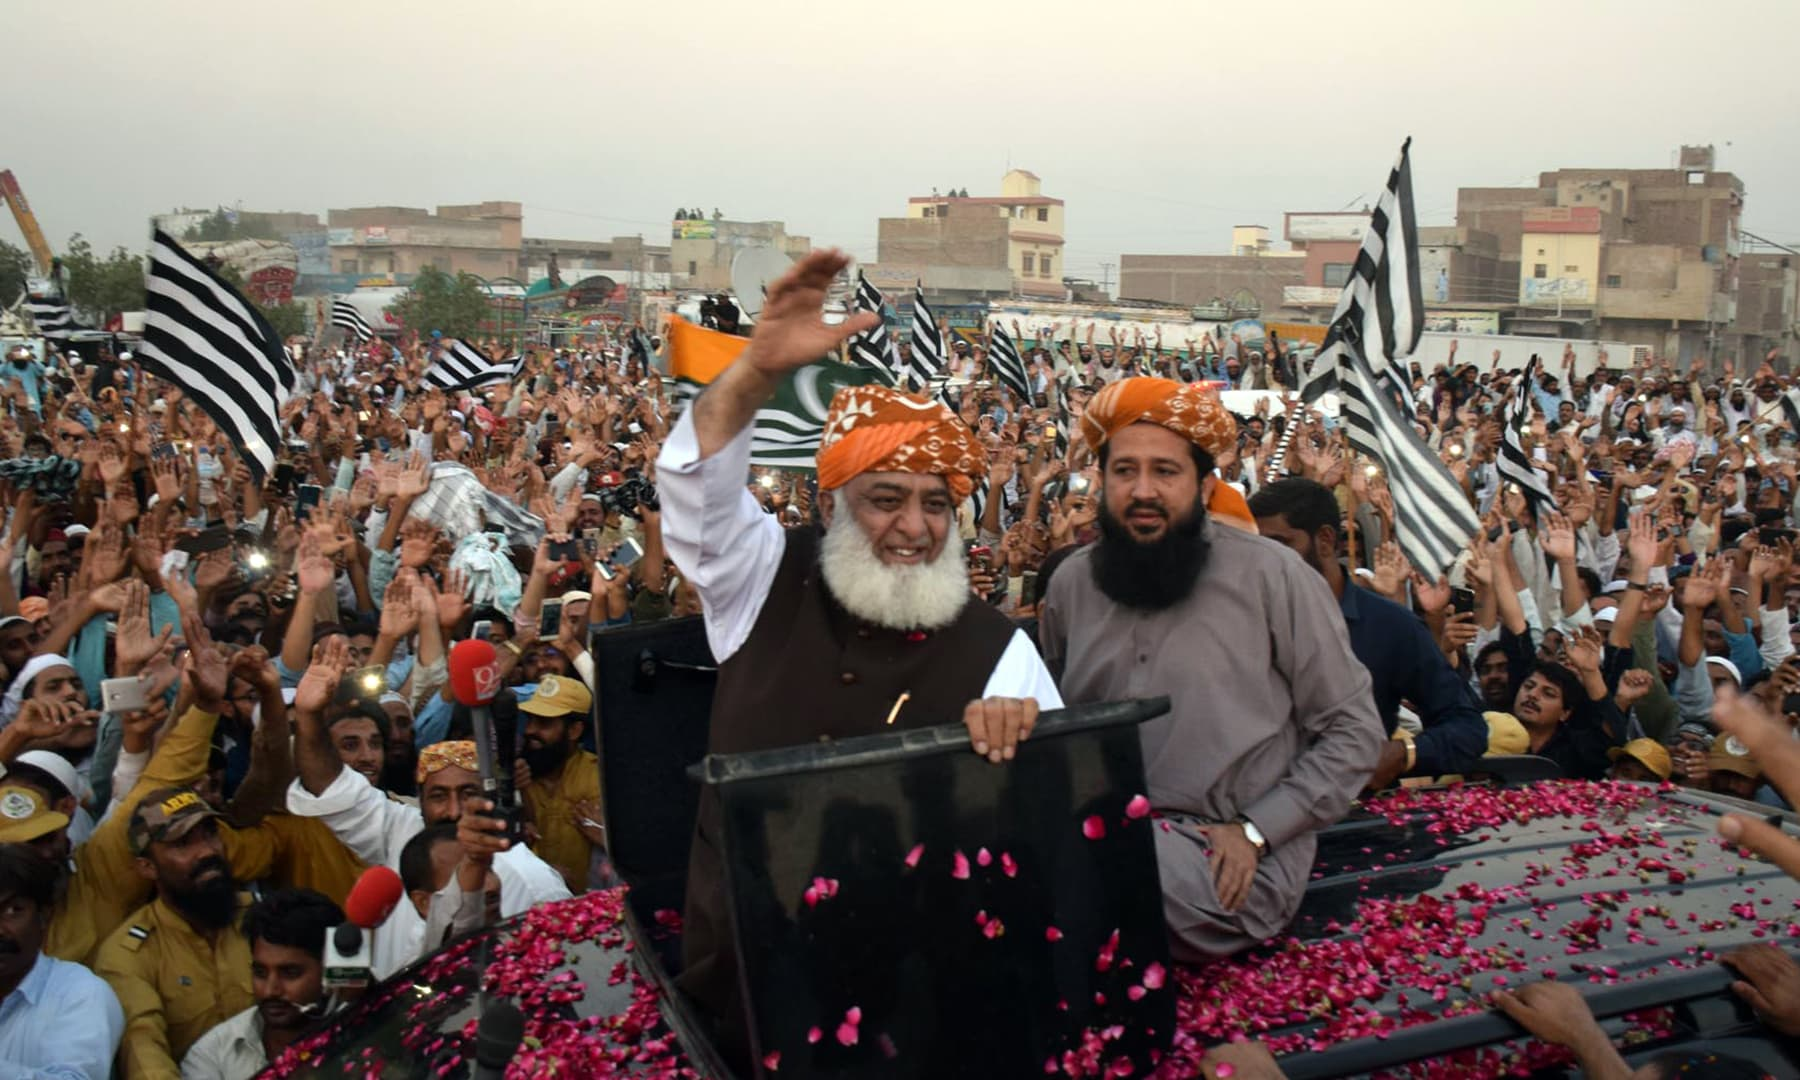 The JUI-F chief emerged from his vehicle to greet supporters in Hyderabad. — Photo courtesy Umair Ali